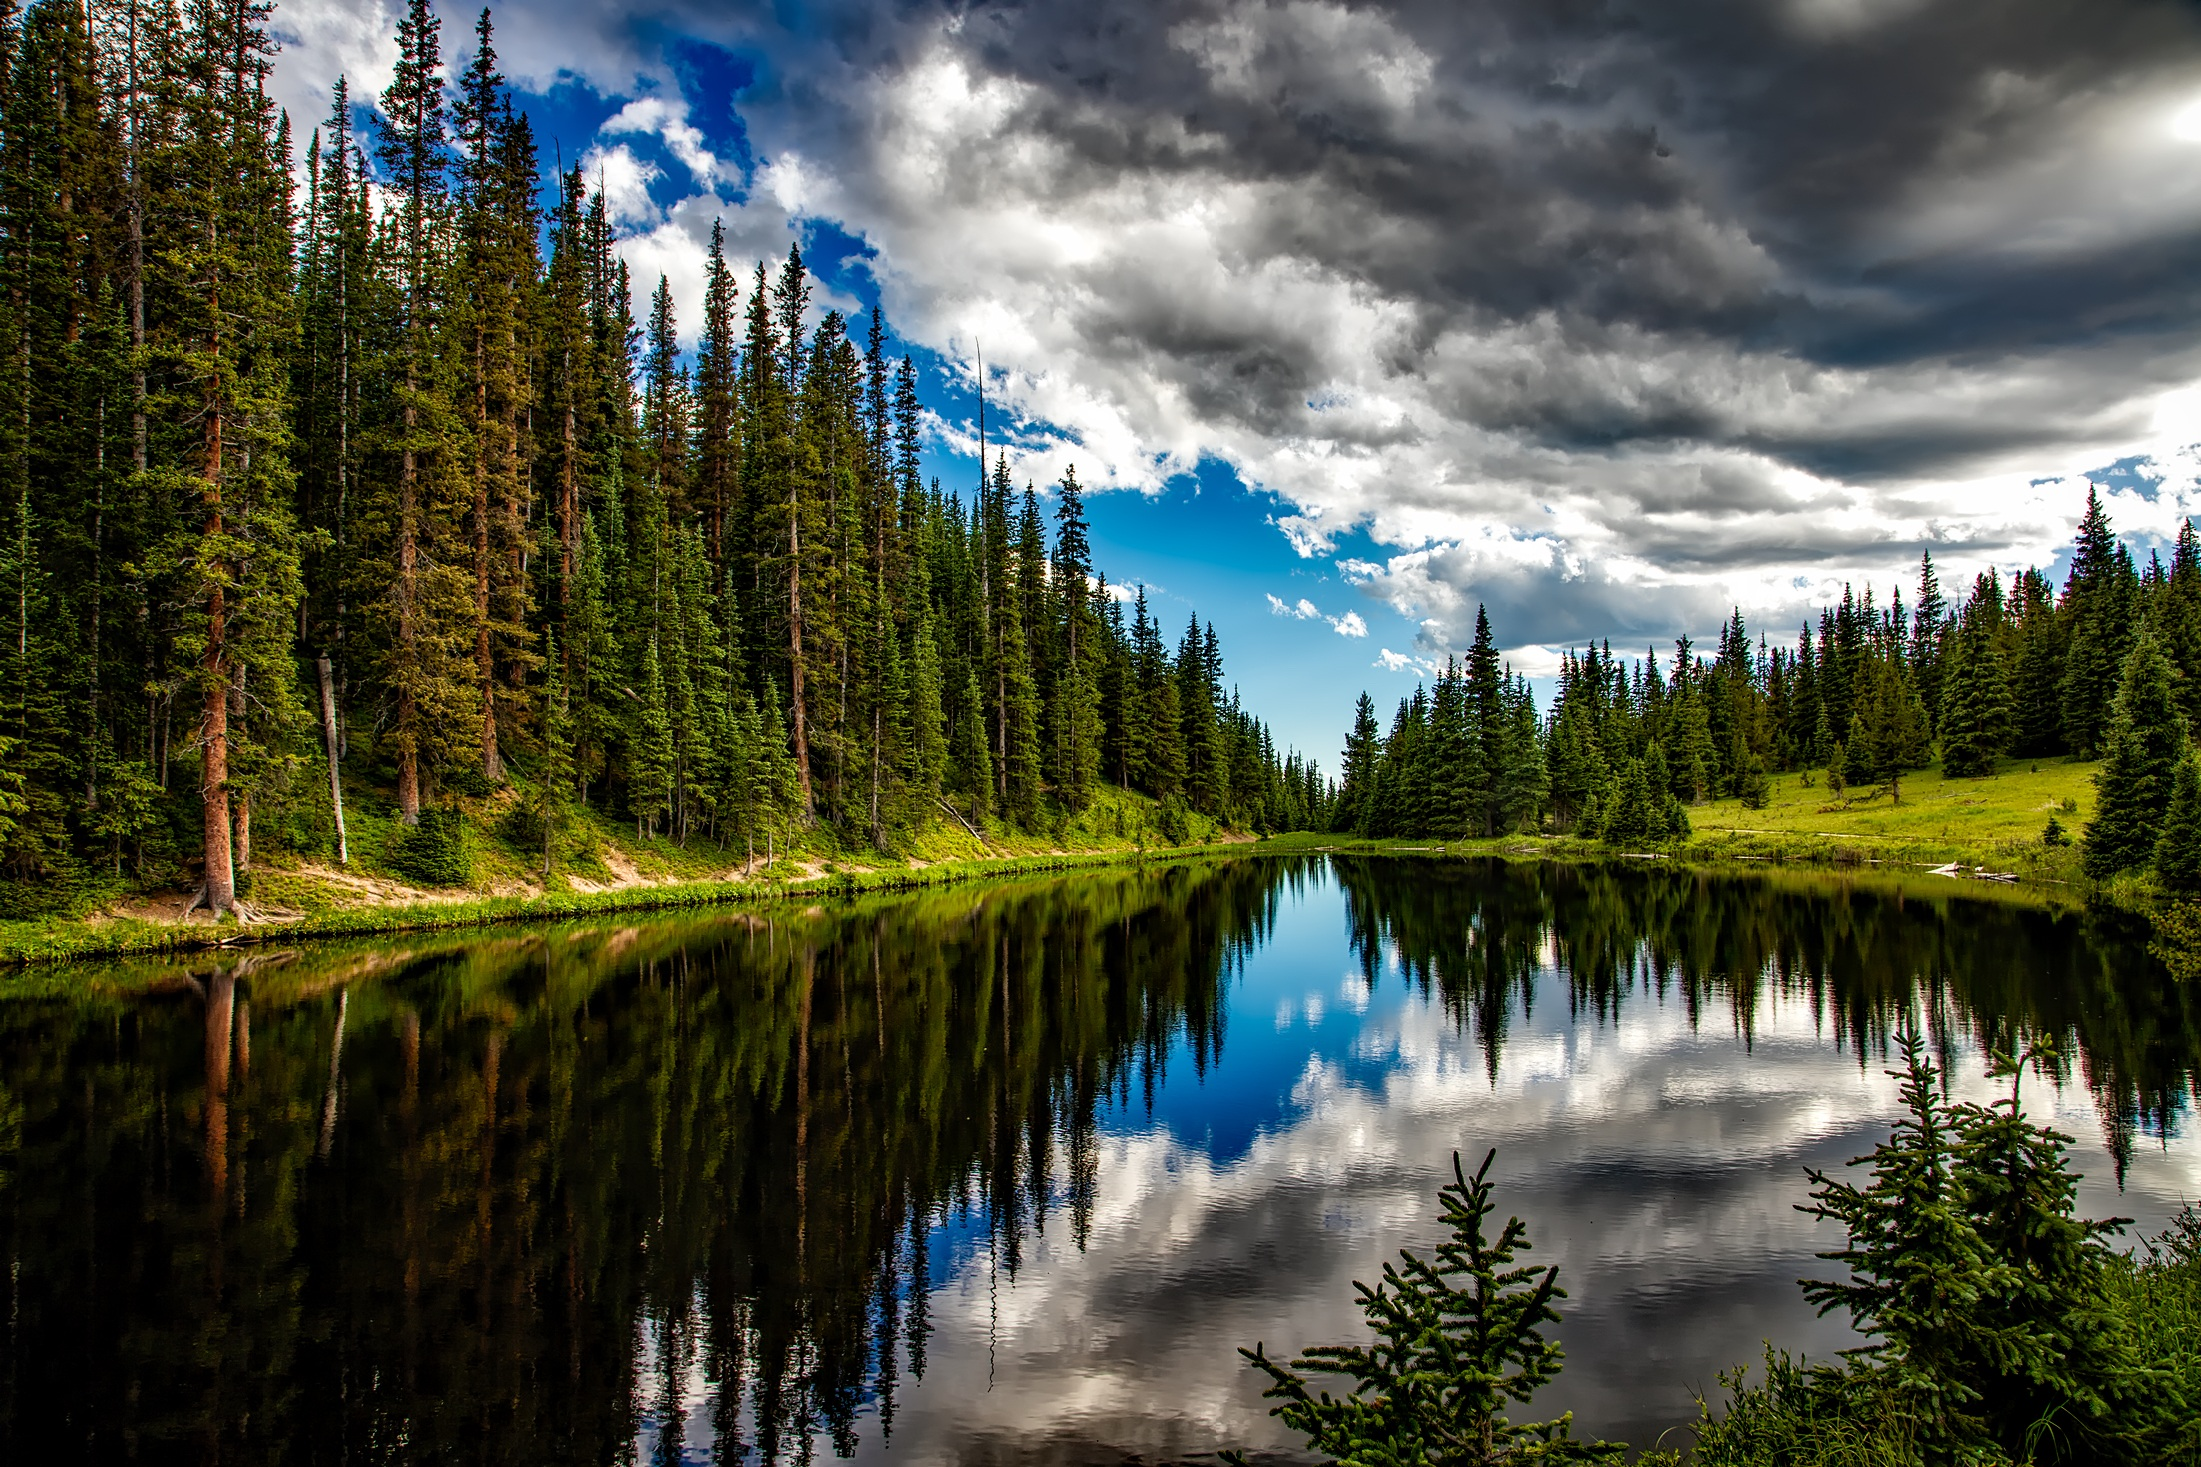 Lolo National Forest - The Lolo National Forest is located in western Montana, surrounds Missoula, MT and is comprised of 2,111,223 acres.